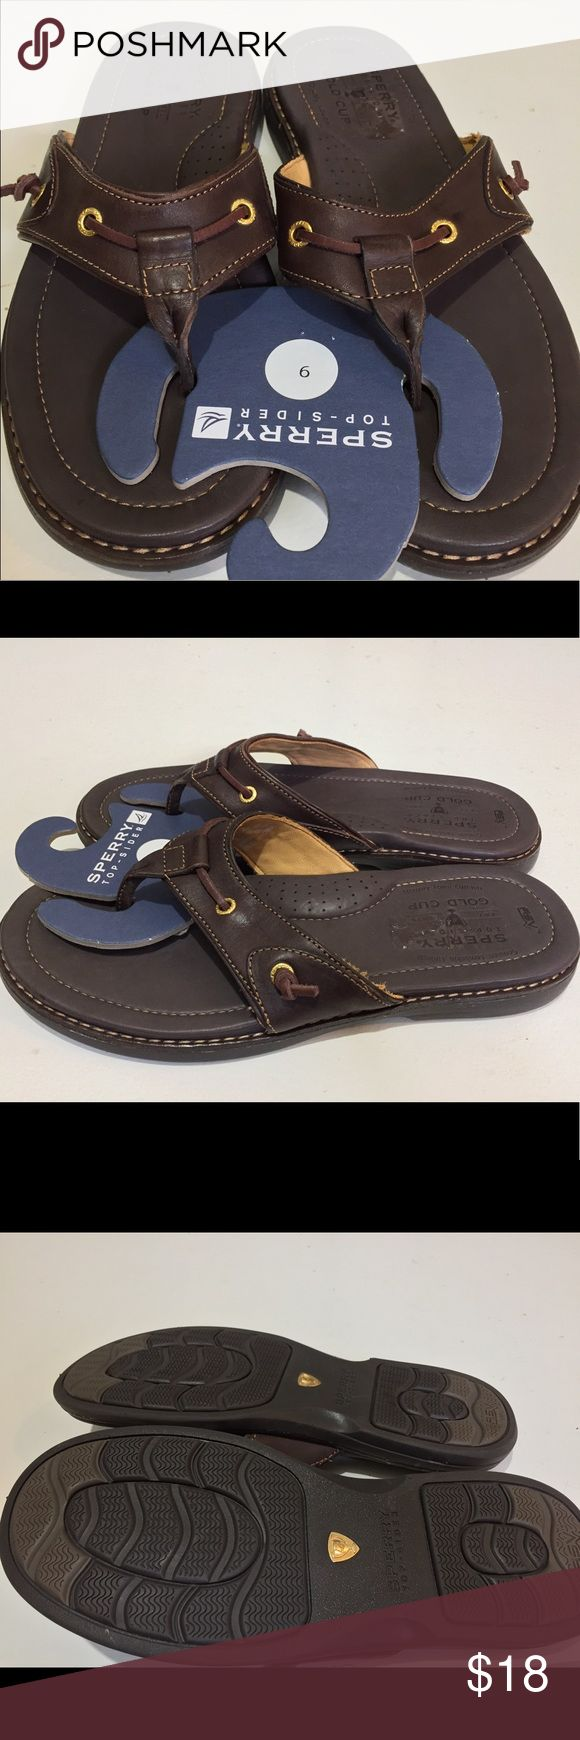 New Sperry Top Sider Men Sandals Brown famous sperry design. New. Never worn. Sperry Top-Sider Shoes Sandals & Flip-Flops